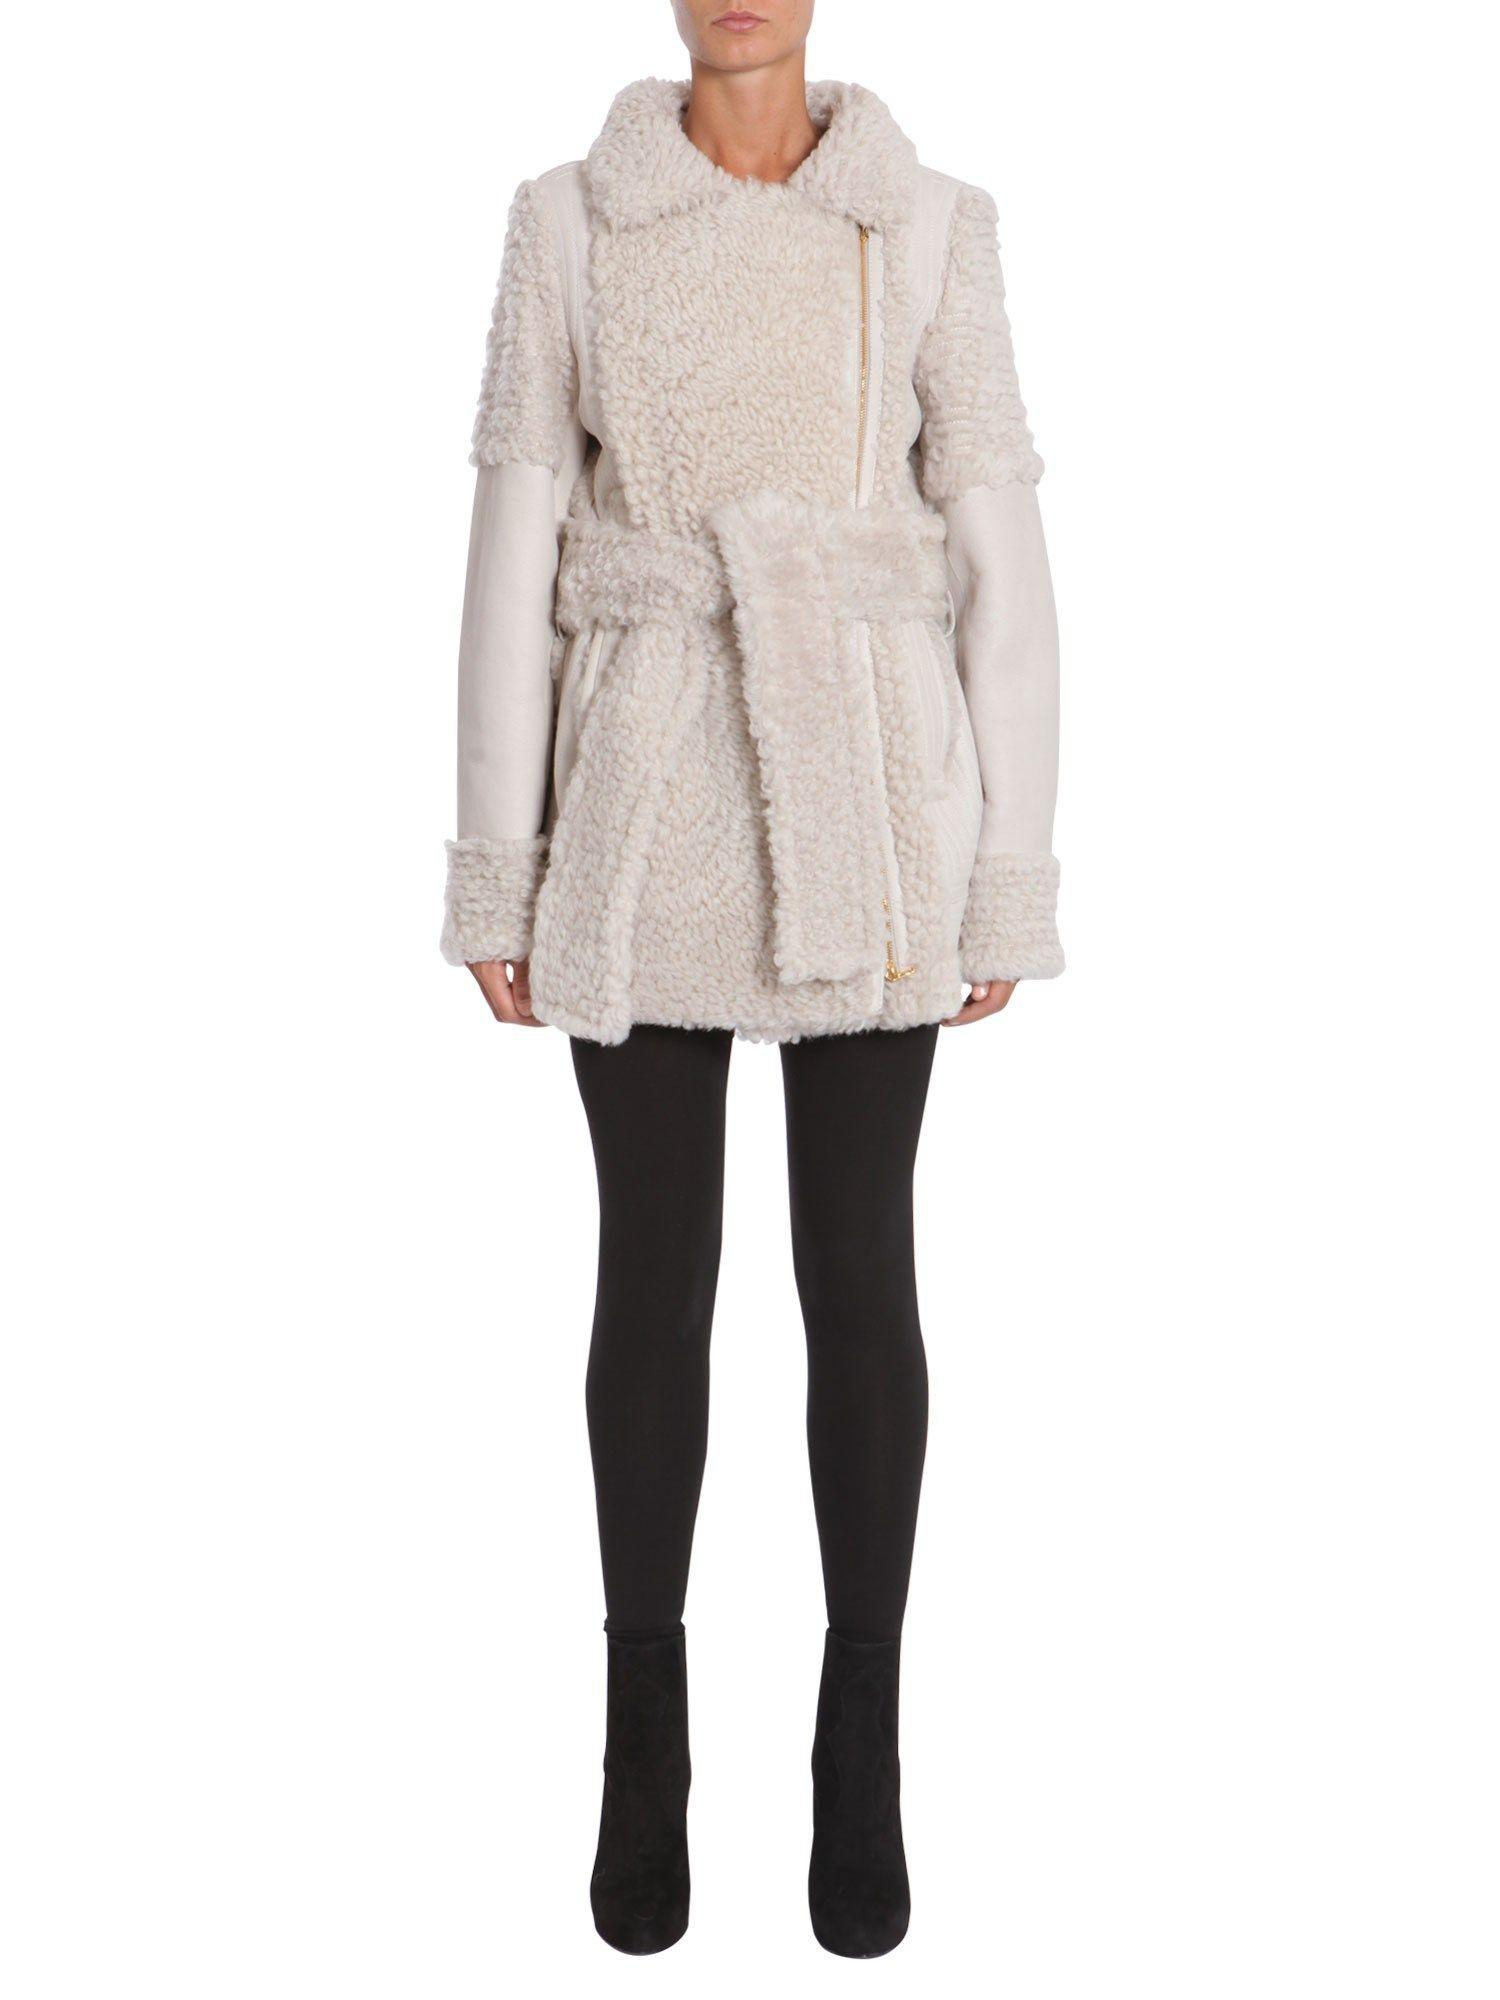 Lanvin Suede And Shearling Jacket In Beige